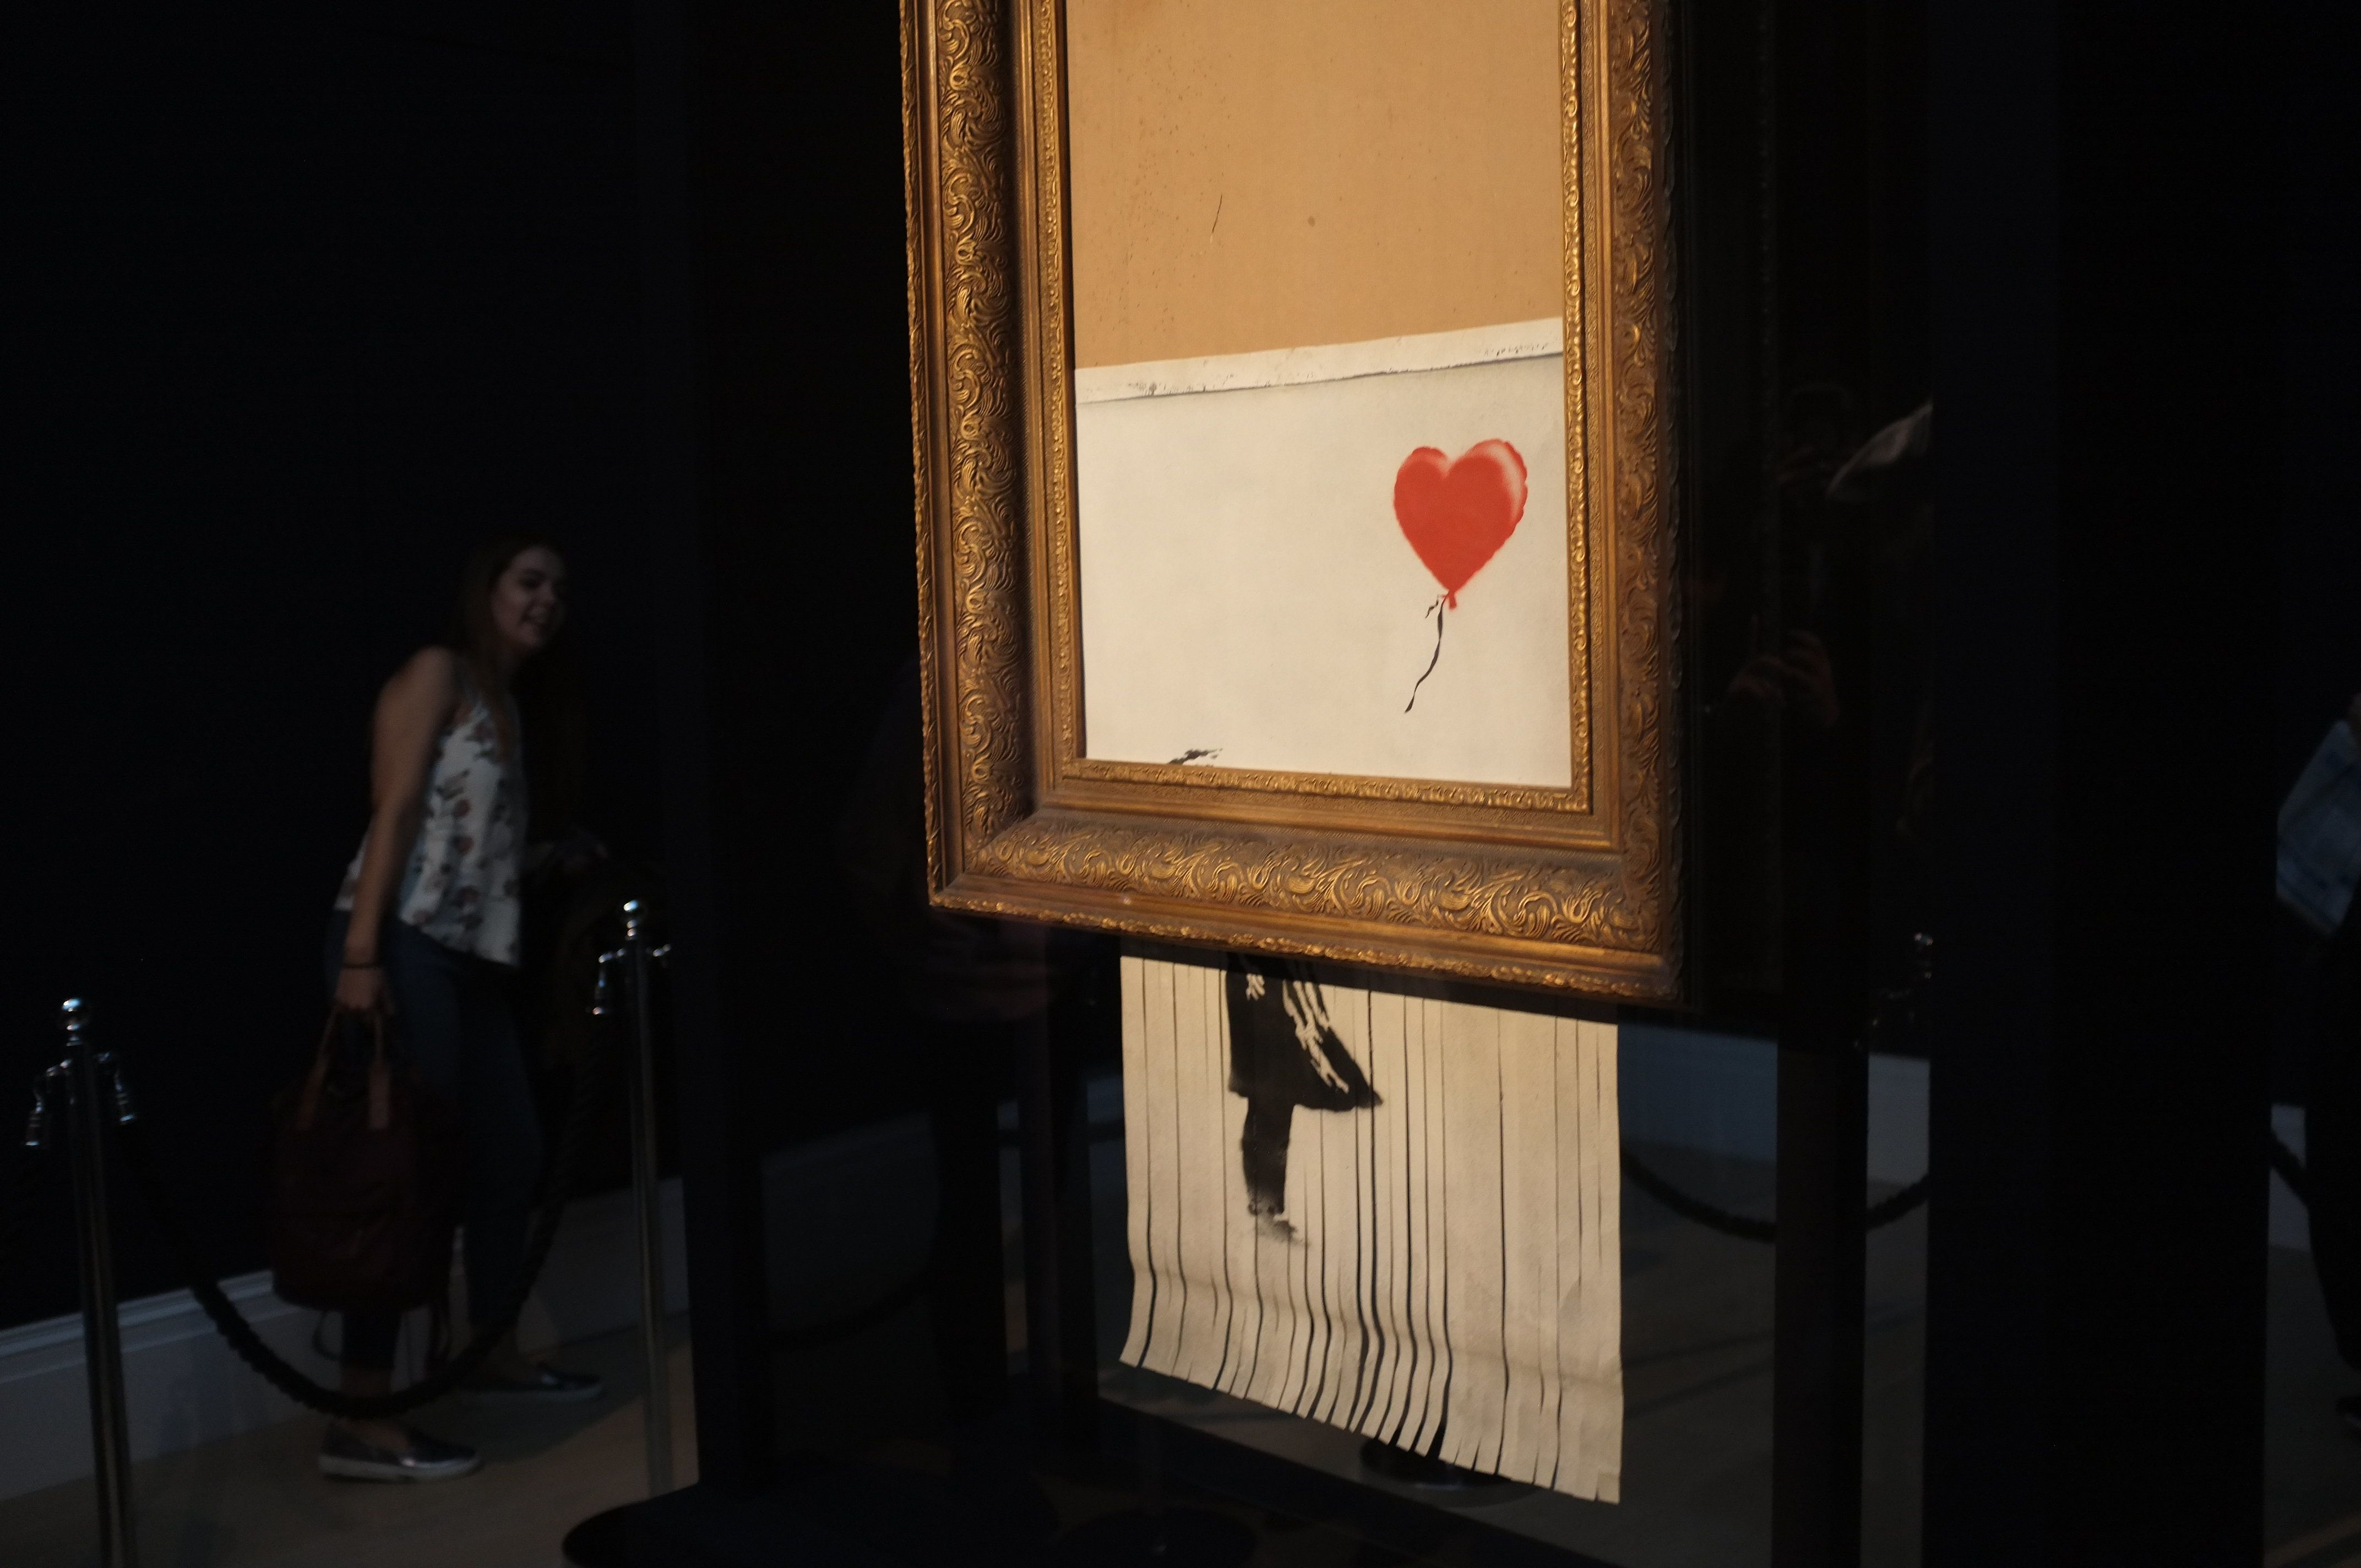 Banksy's Self-Destructing Artwork Is The 1 Halloween Costume To Shred Them